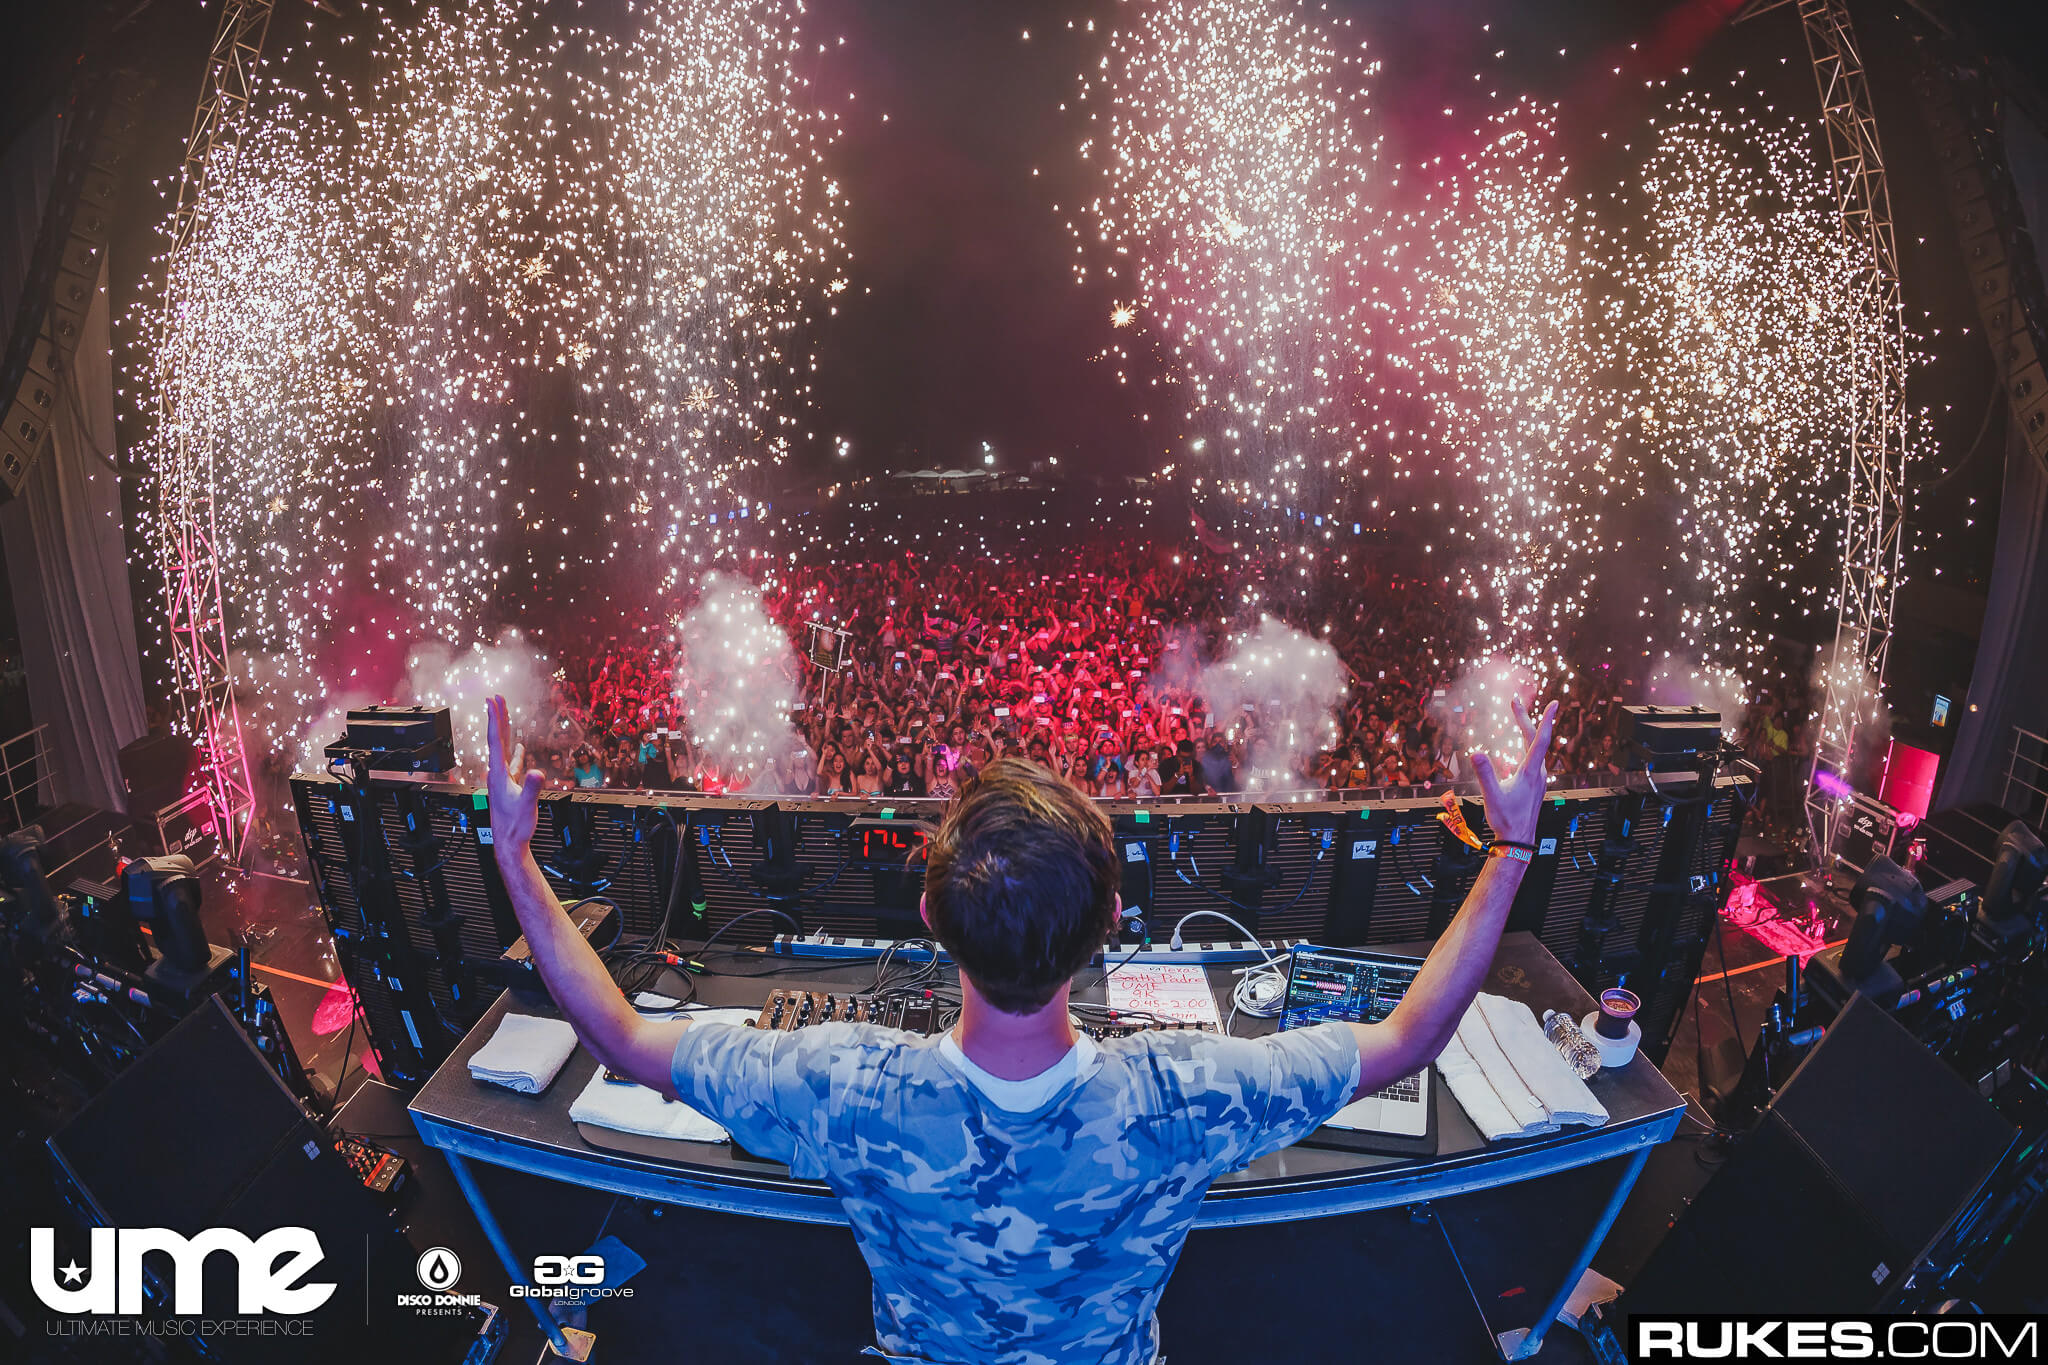 zedd headlines day three of ume